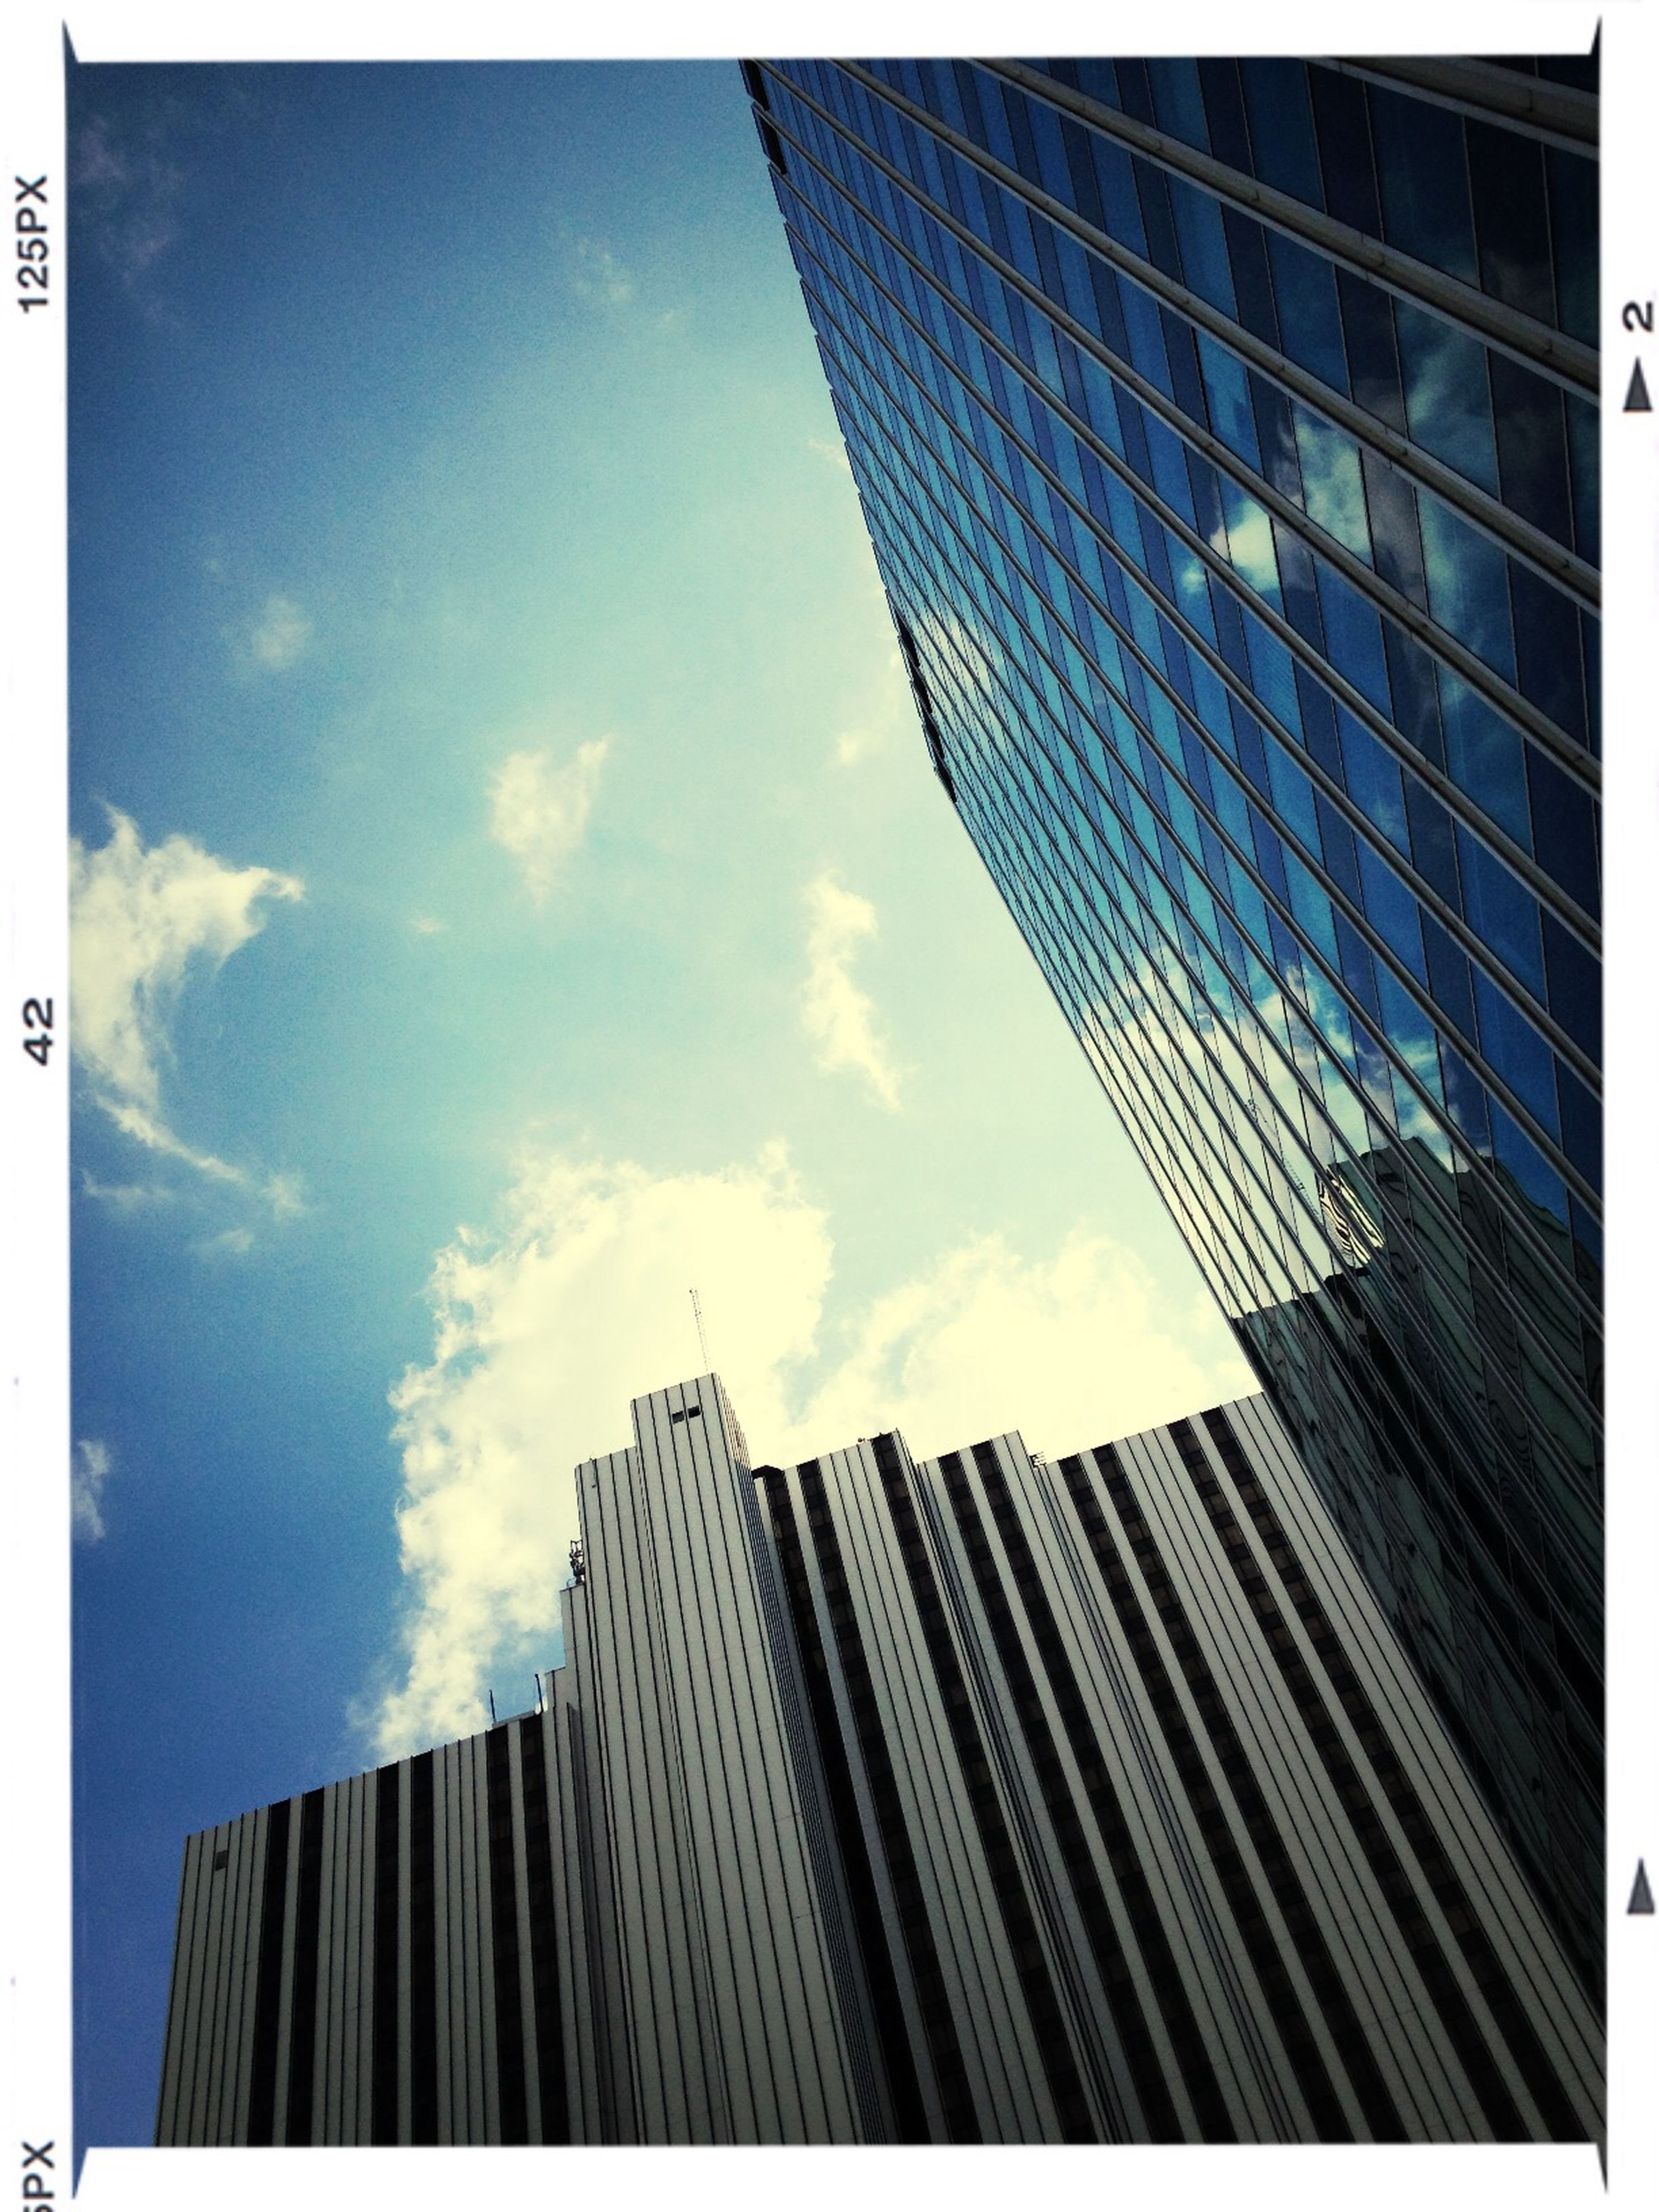 building exterior, architecture, built structure, low angle view, skyscraper, office building, transfer print, city, modern, tall - high, tower, sky, auto post production filter, building, tall, cloud - sky, day, cloud, outdoors, glass - material